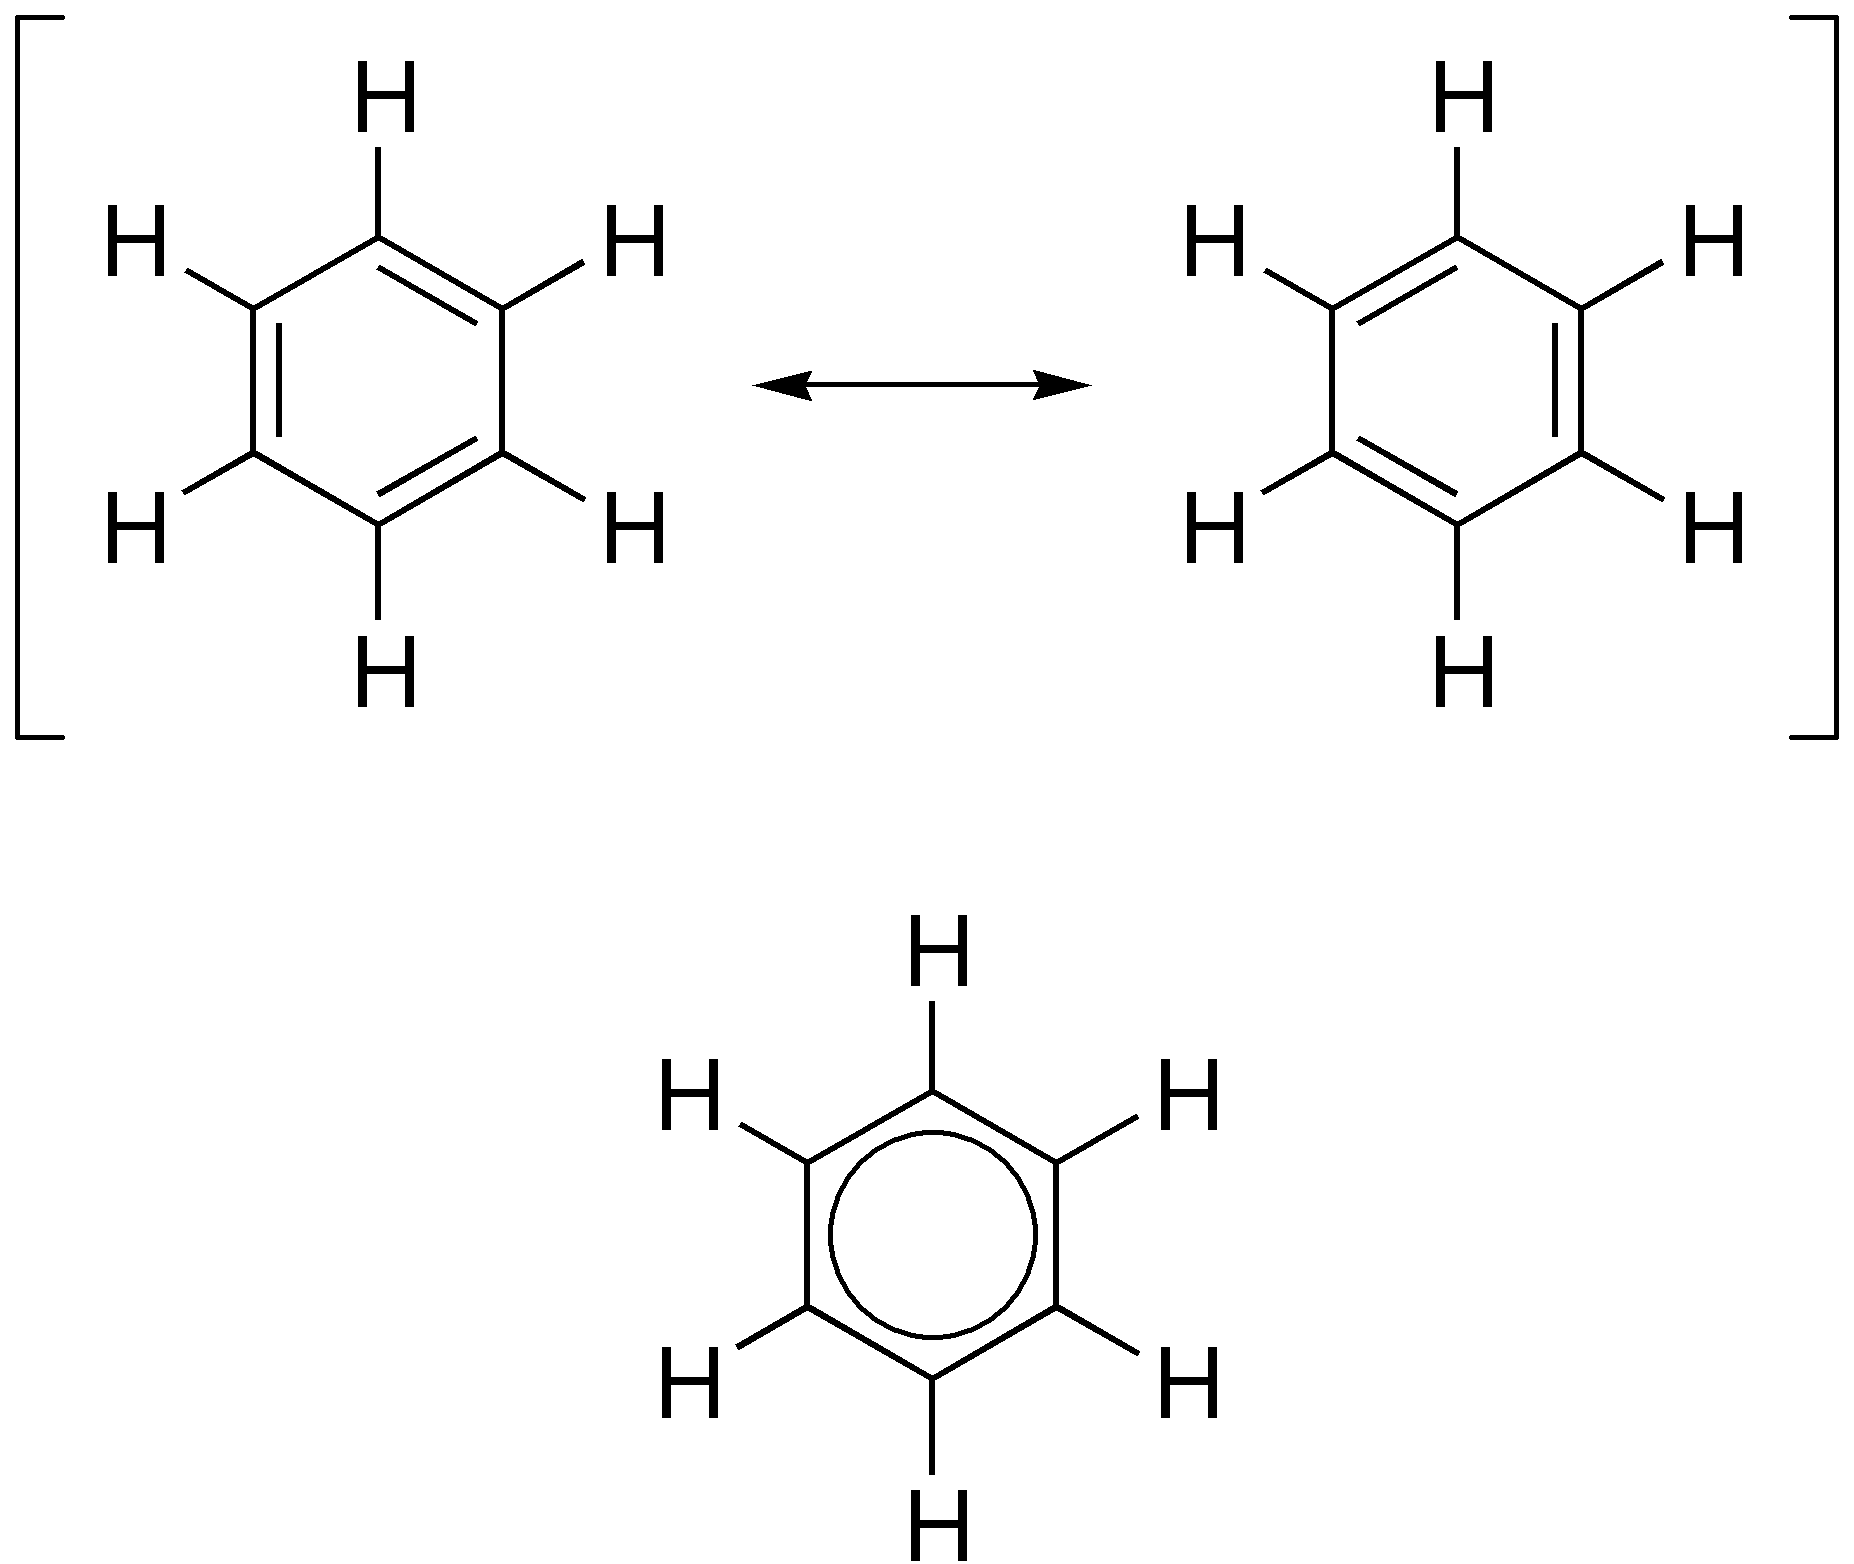 File:Benzene resonance structures.png - Wikimedia Commons